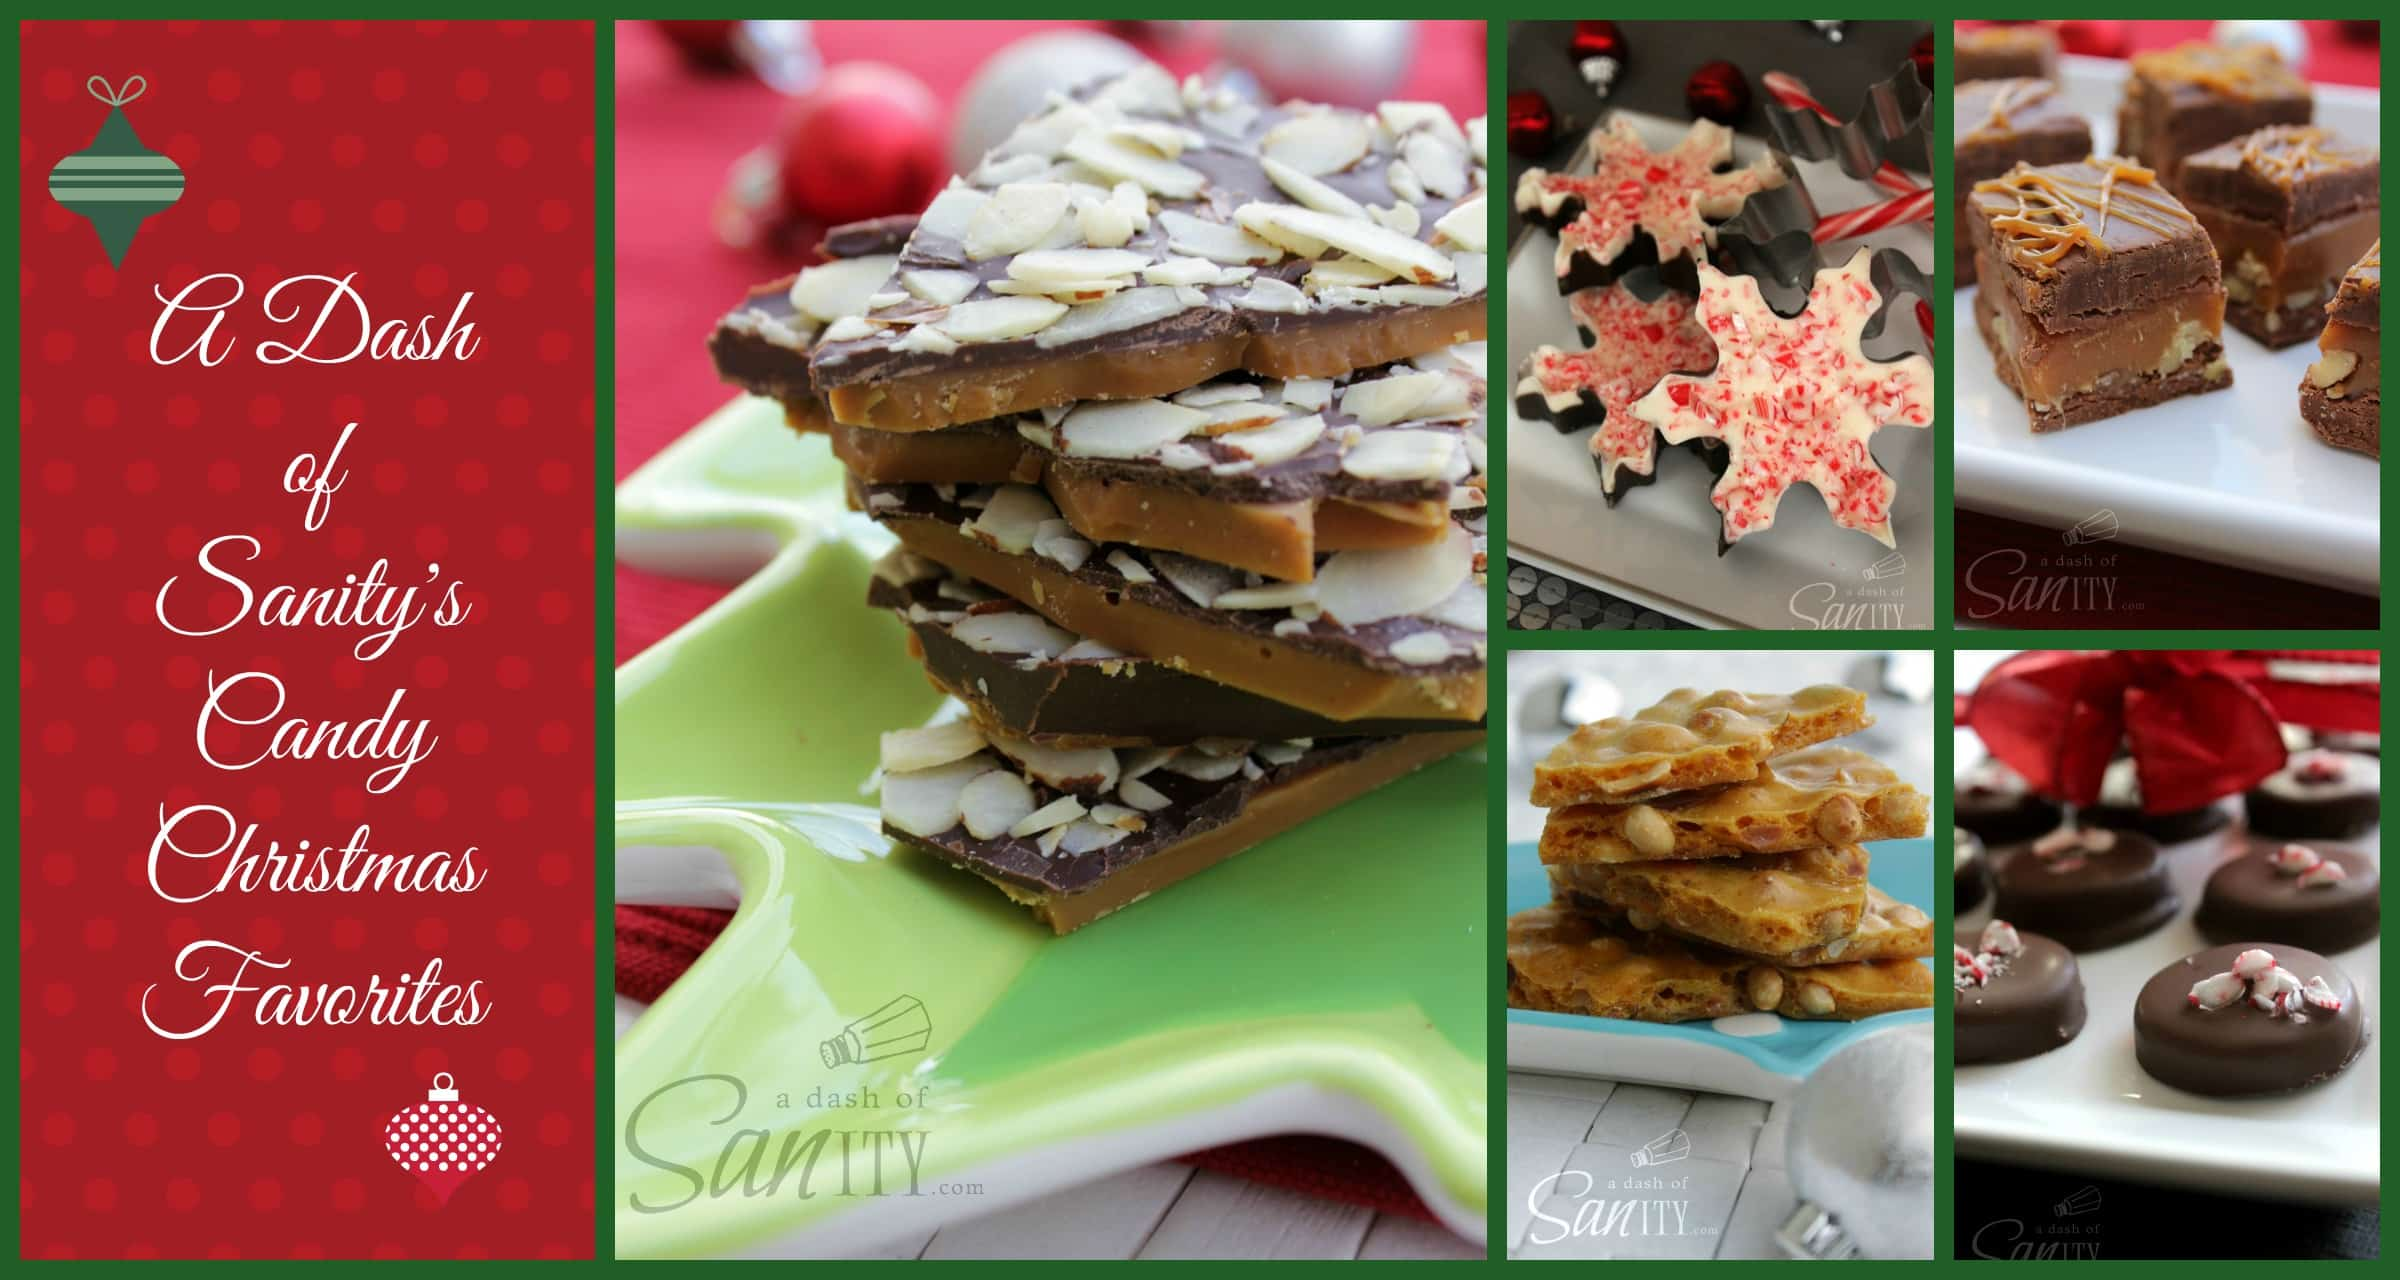 A Dash of Sanity's Christmas Candy Favorites collage